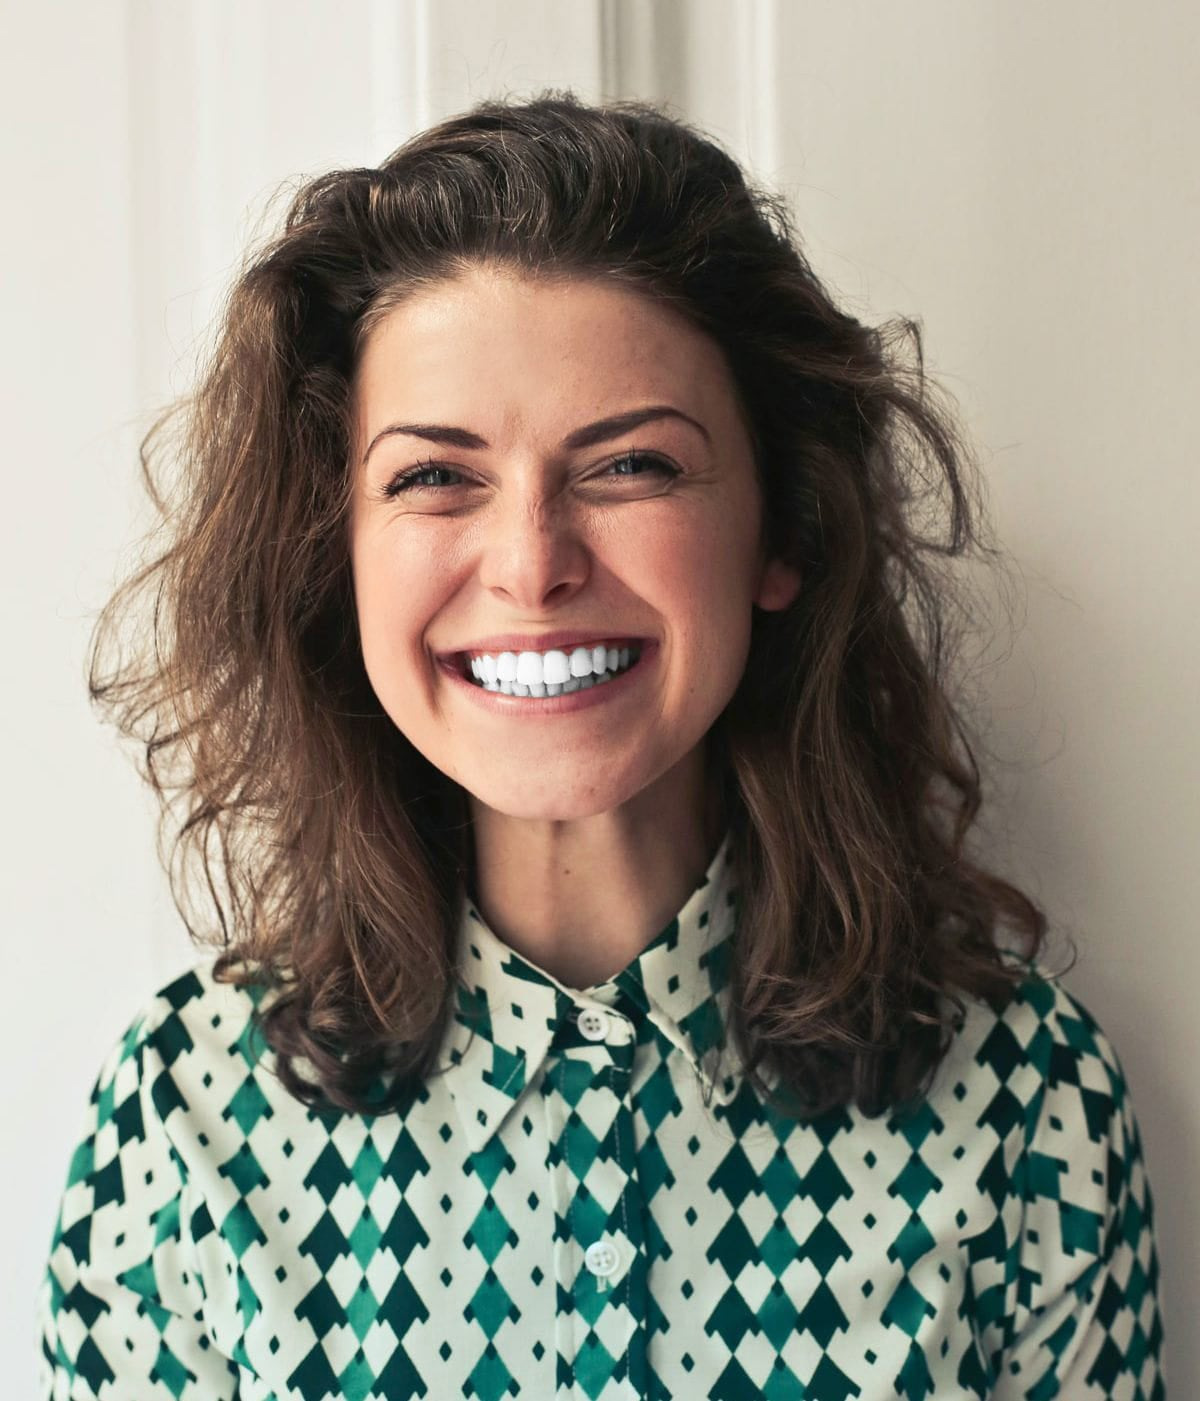 Female smiling with white teeth